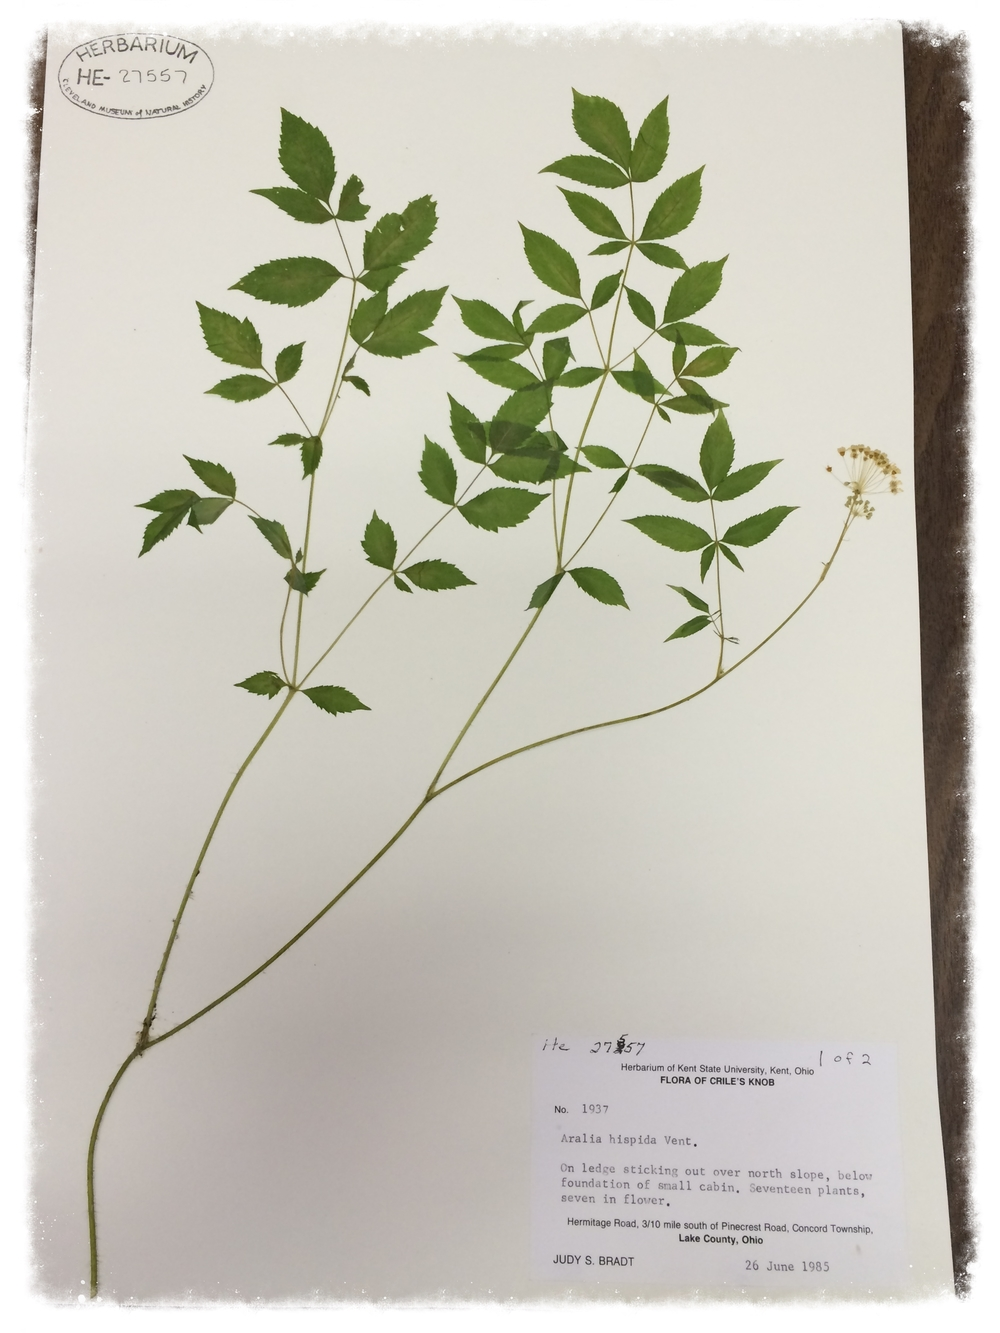 Aralia hispida , bristly sarsaparilla, specimen collected by Judy Bradt during her graduate studies research in the field.  Close-ups of   A. hispida    specime n and  label .   Courtesy of The Cleveland Museum of Natural History, Trish Fox, Herbarium Coordinator